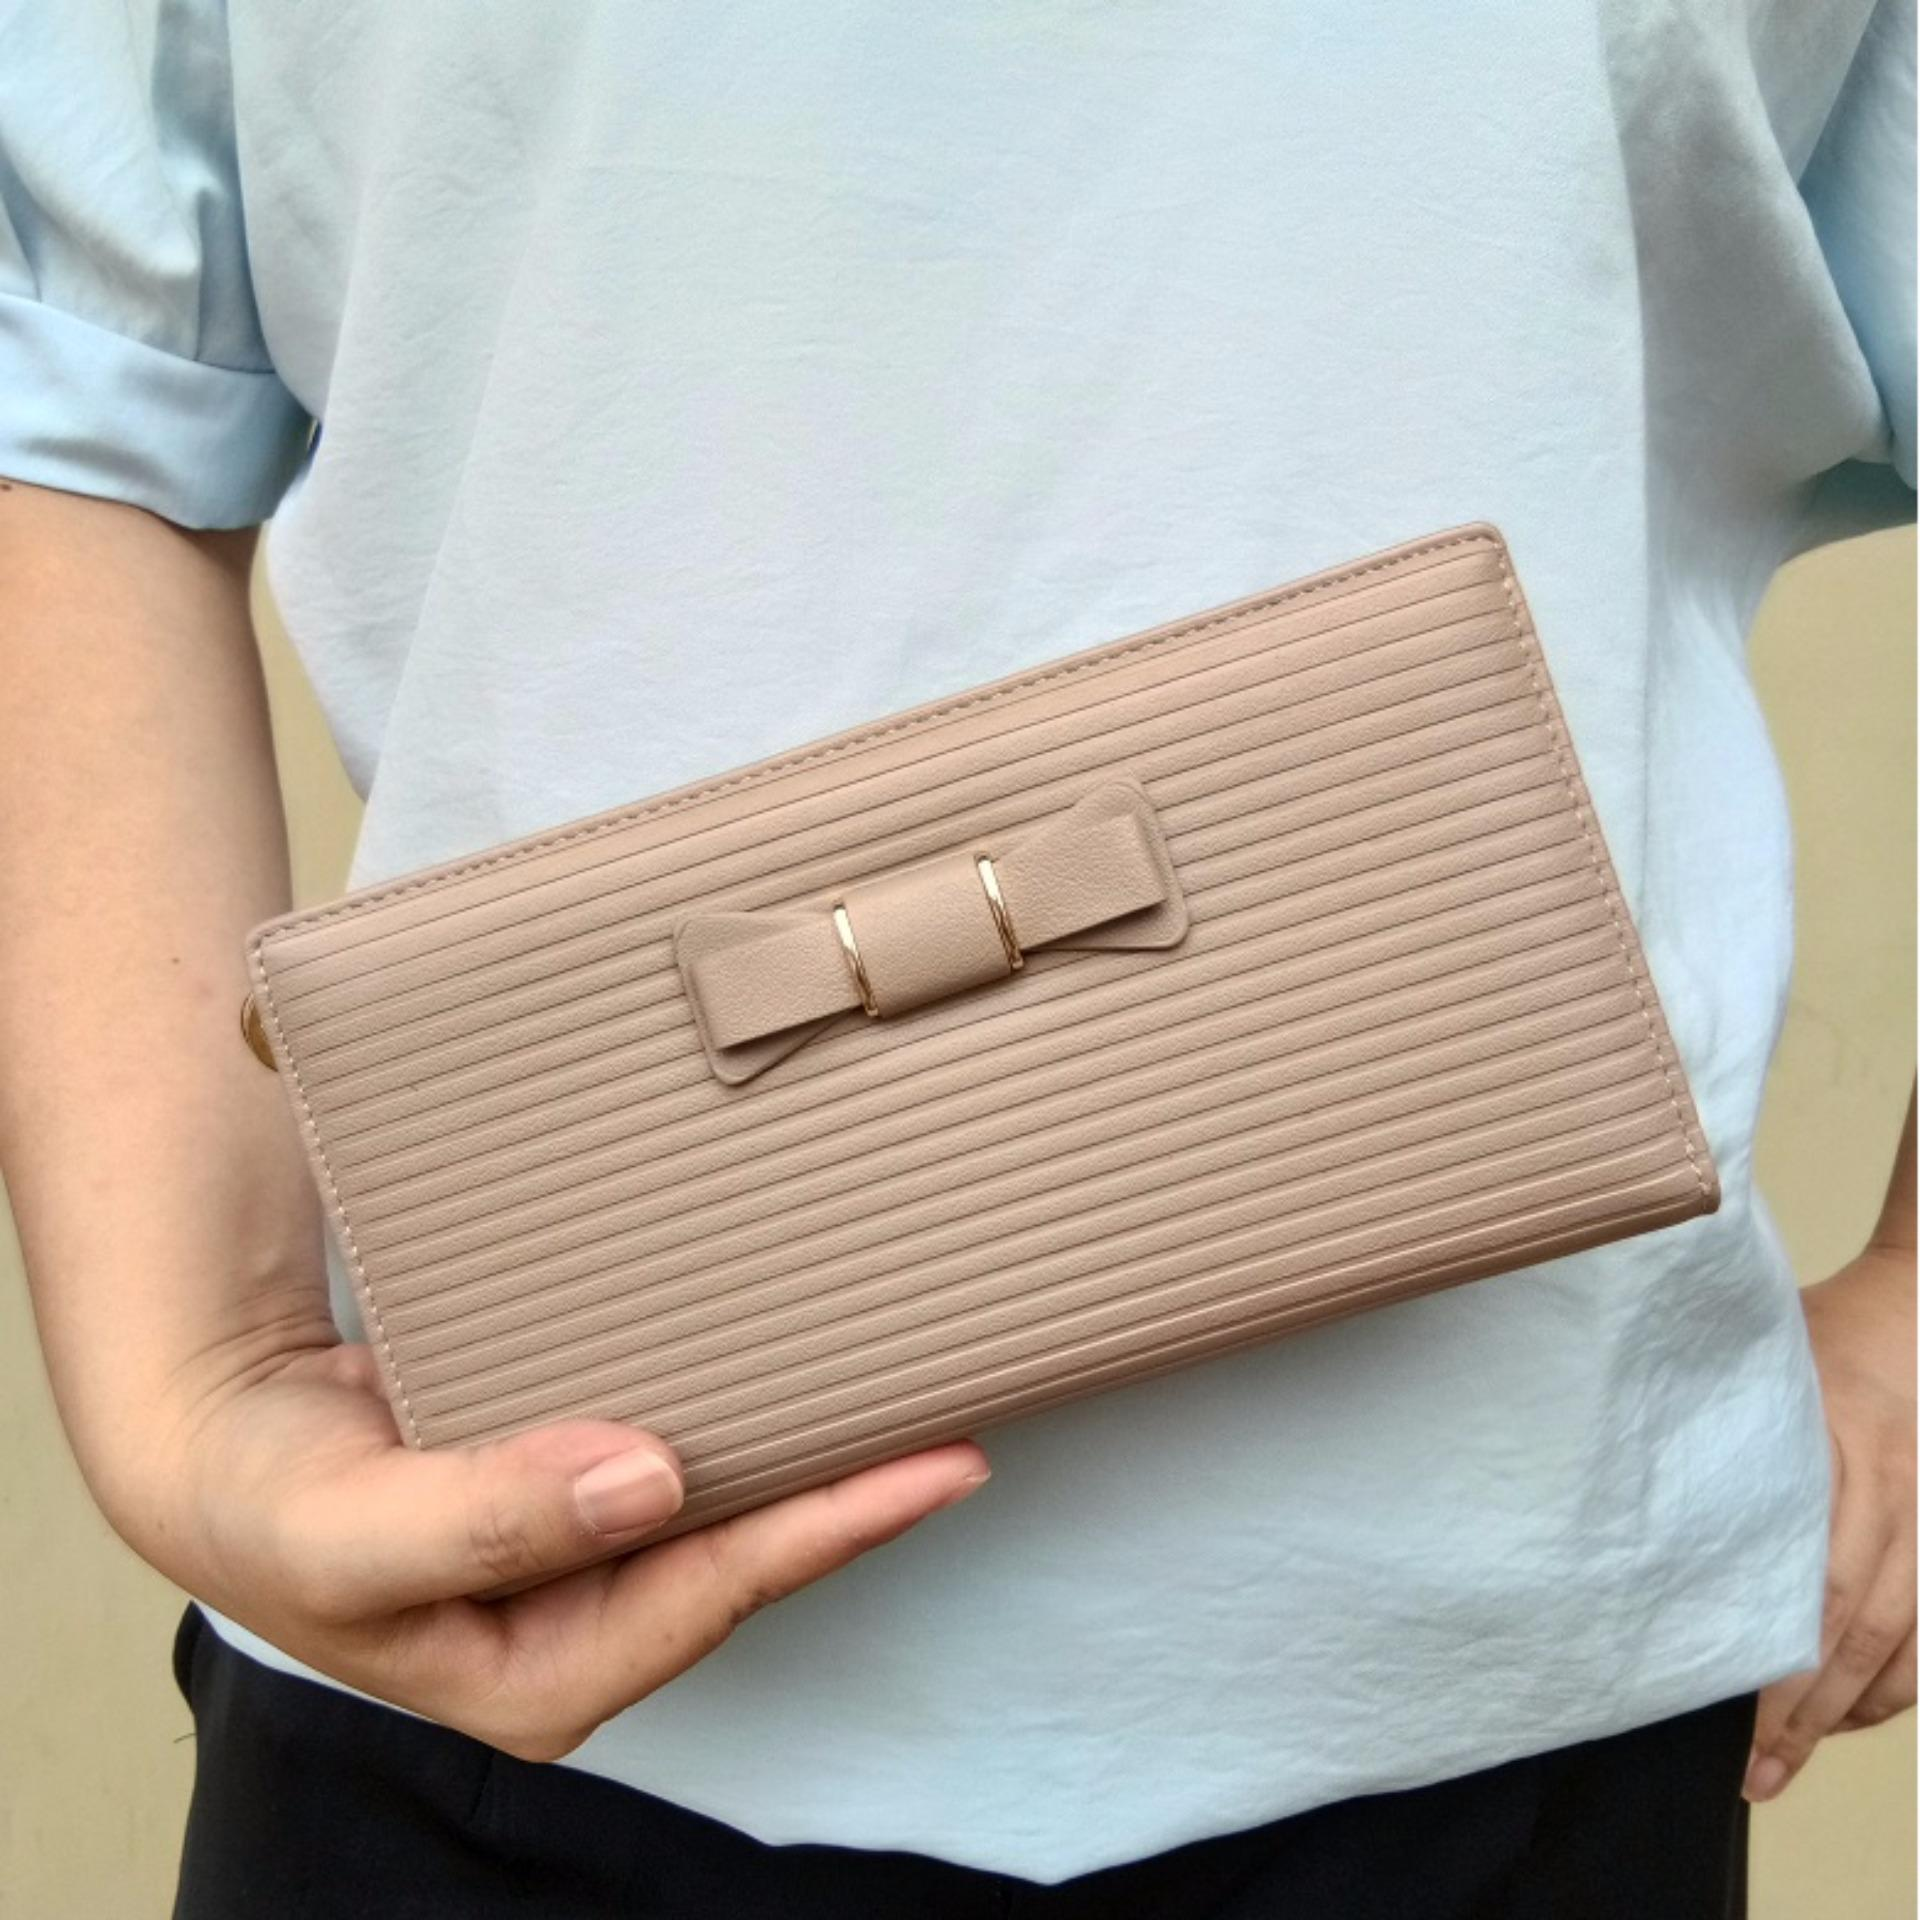 Kualitas Jcf Multifungsi Dompet Clutch Wanita Fashion Branded Pu Leather Import Alice Light Brown Bagus Dan Mewah Jcf